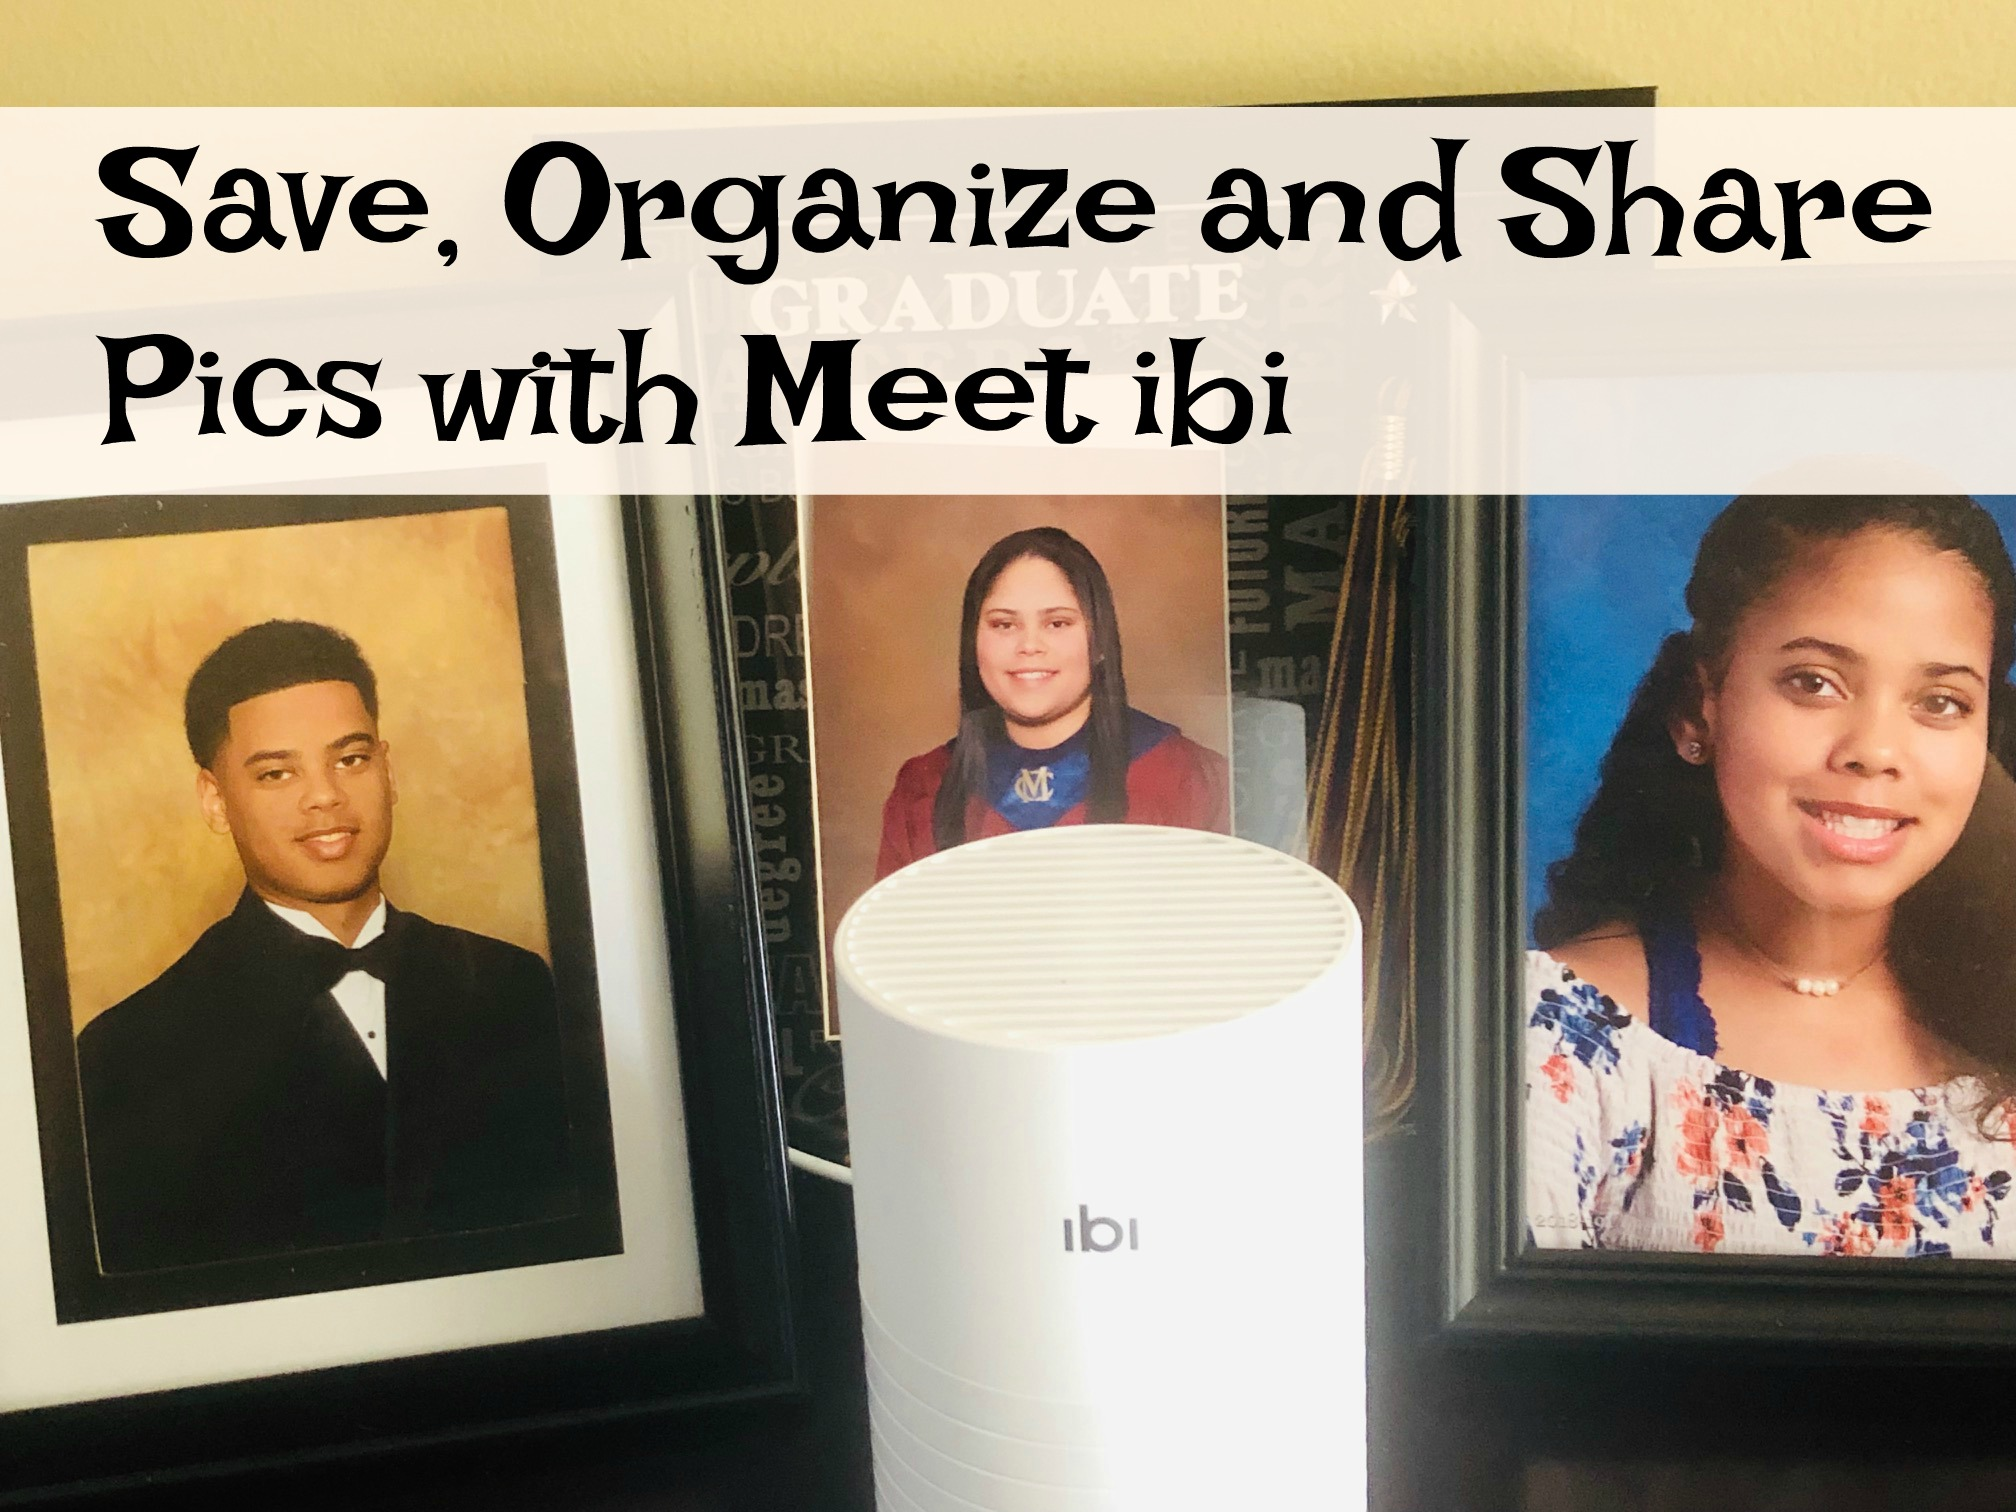 Save, Organize and Share Pics with Meet ibi